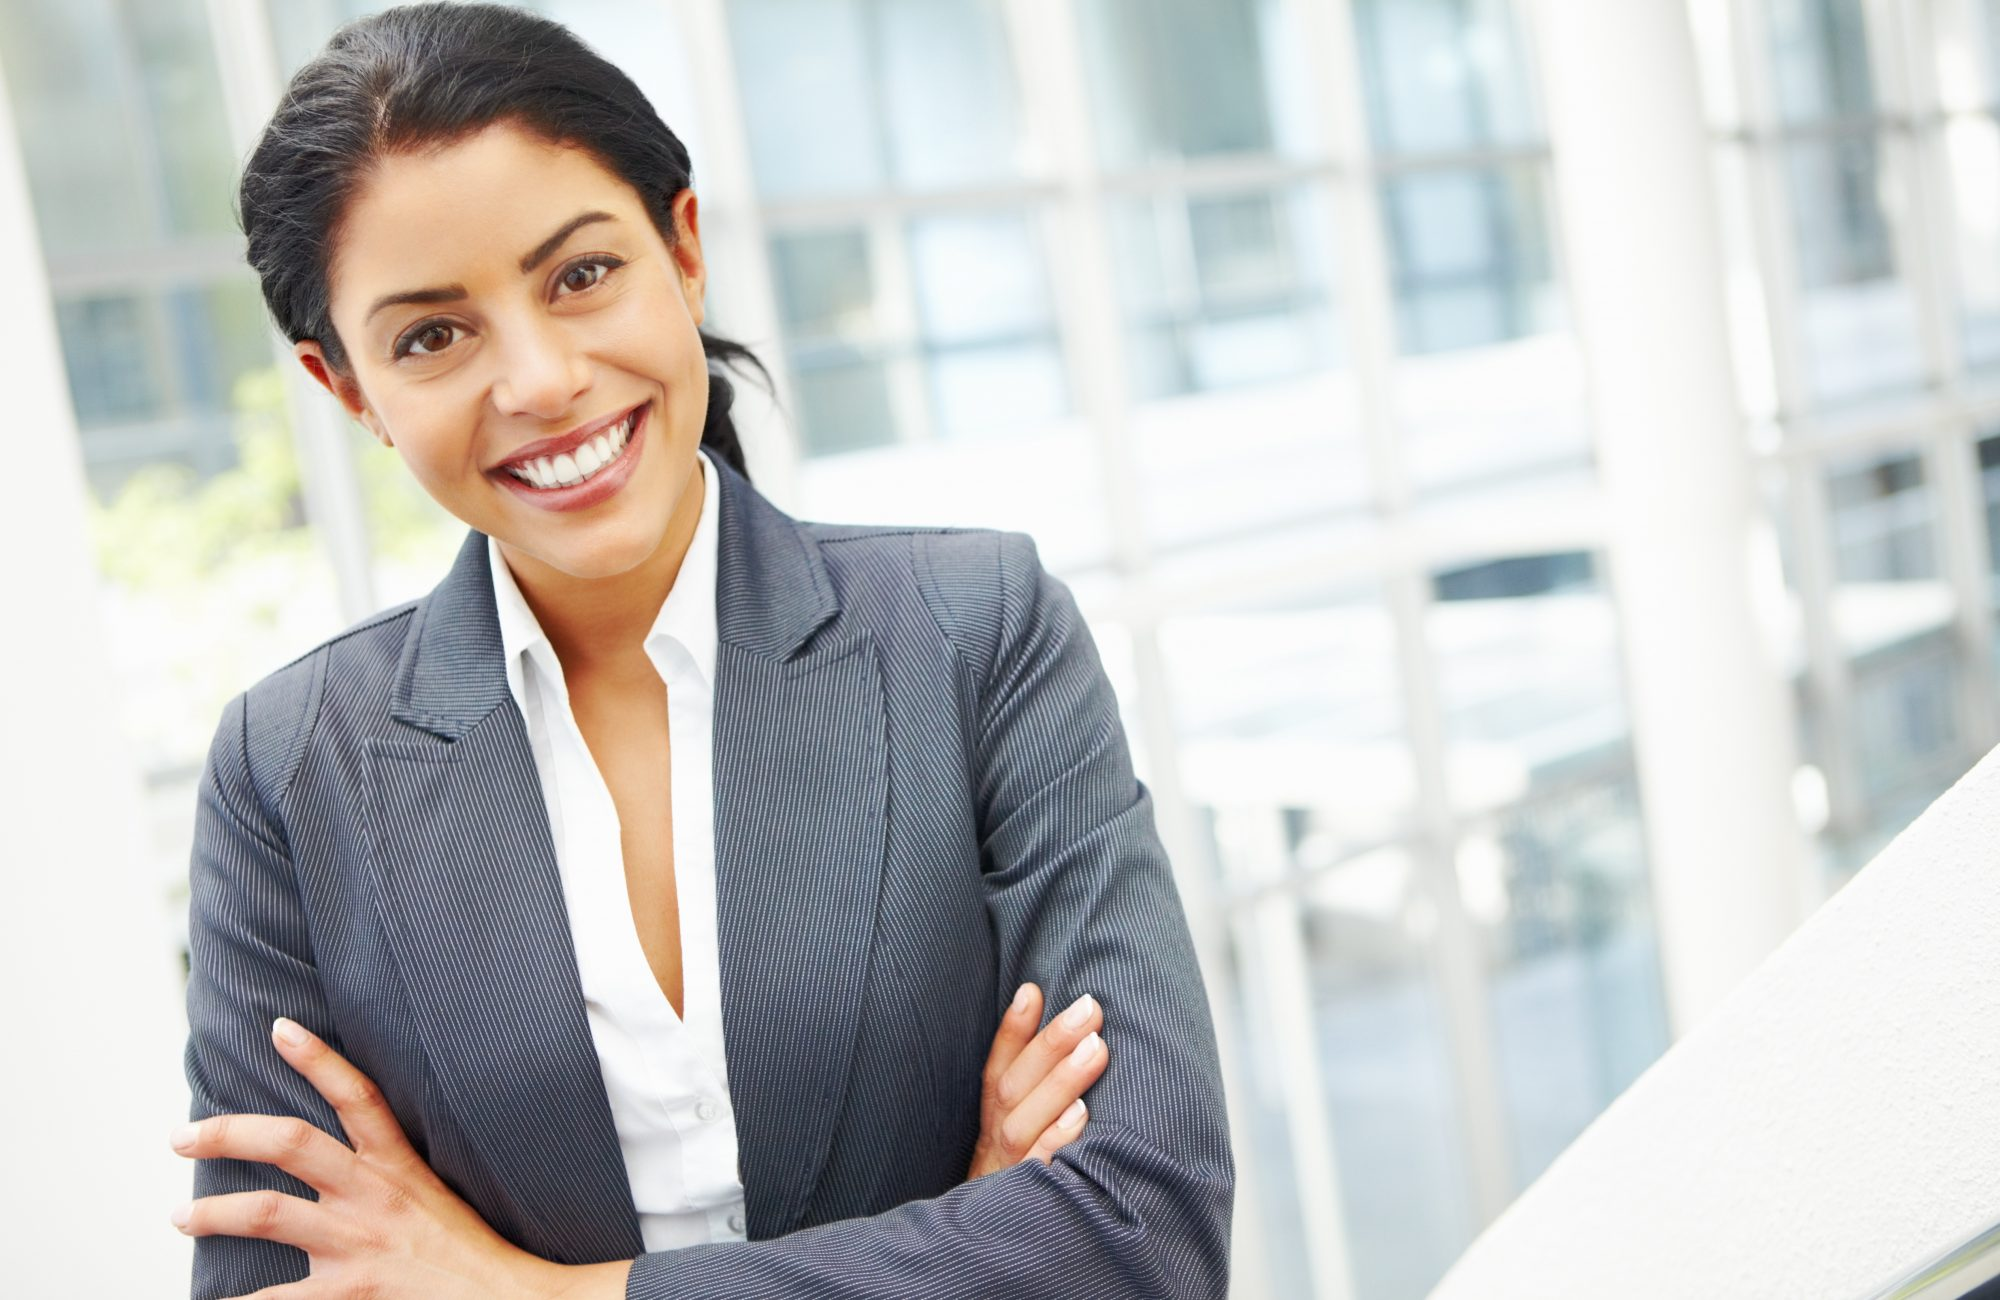 Portrait of an attractive female executive smiling with arms crossed at the workplace - copyspace